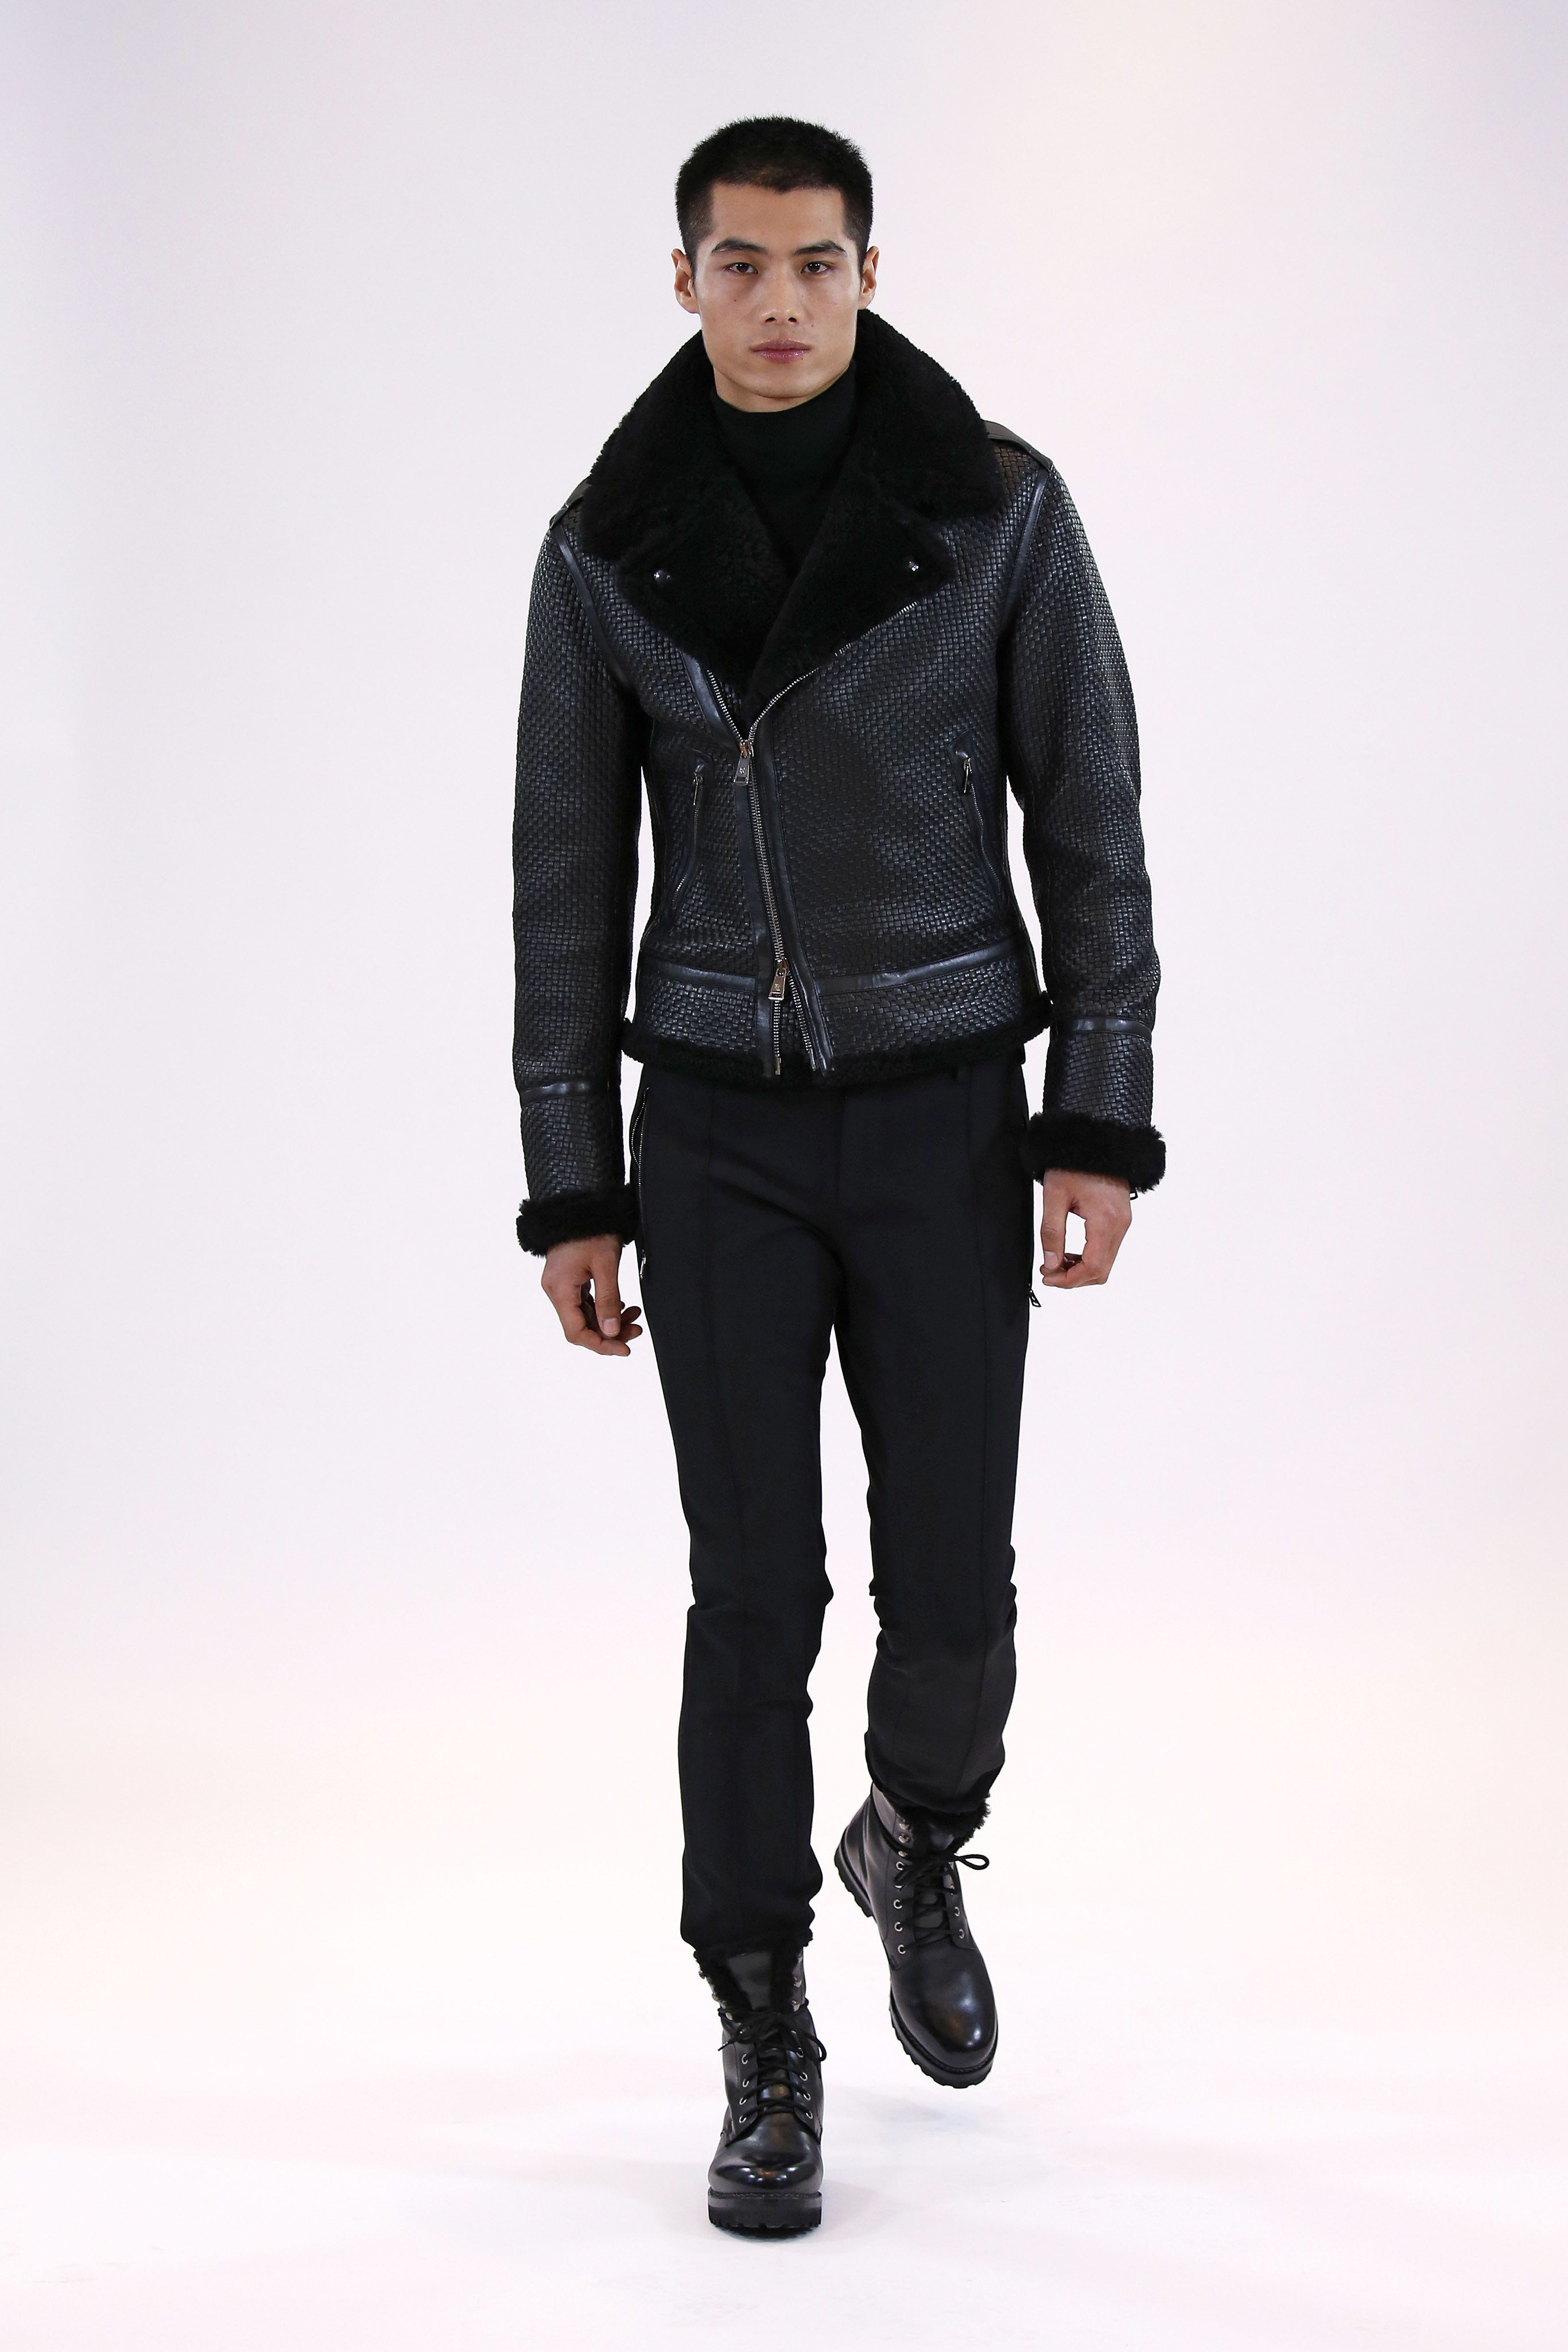 092aef7634da3 See the complete Ralph Lauren Fall 2016 Menswear collection.